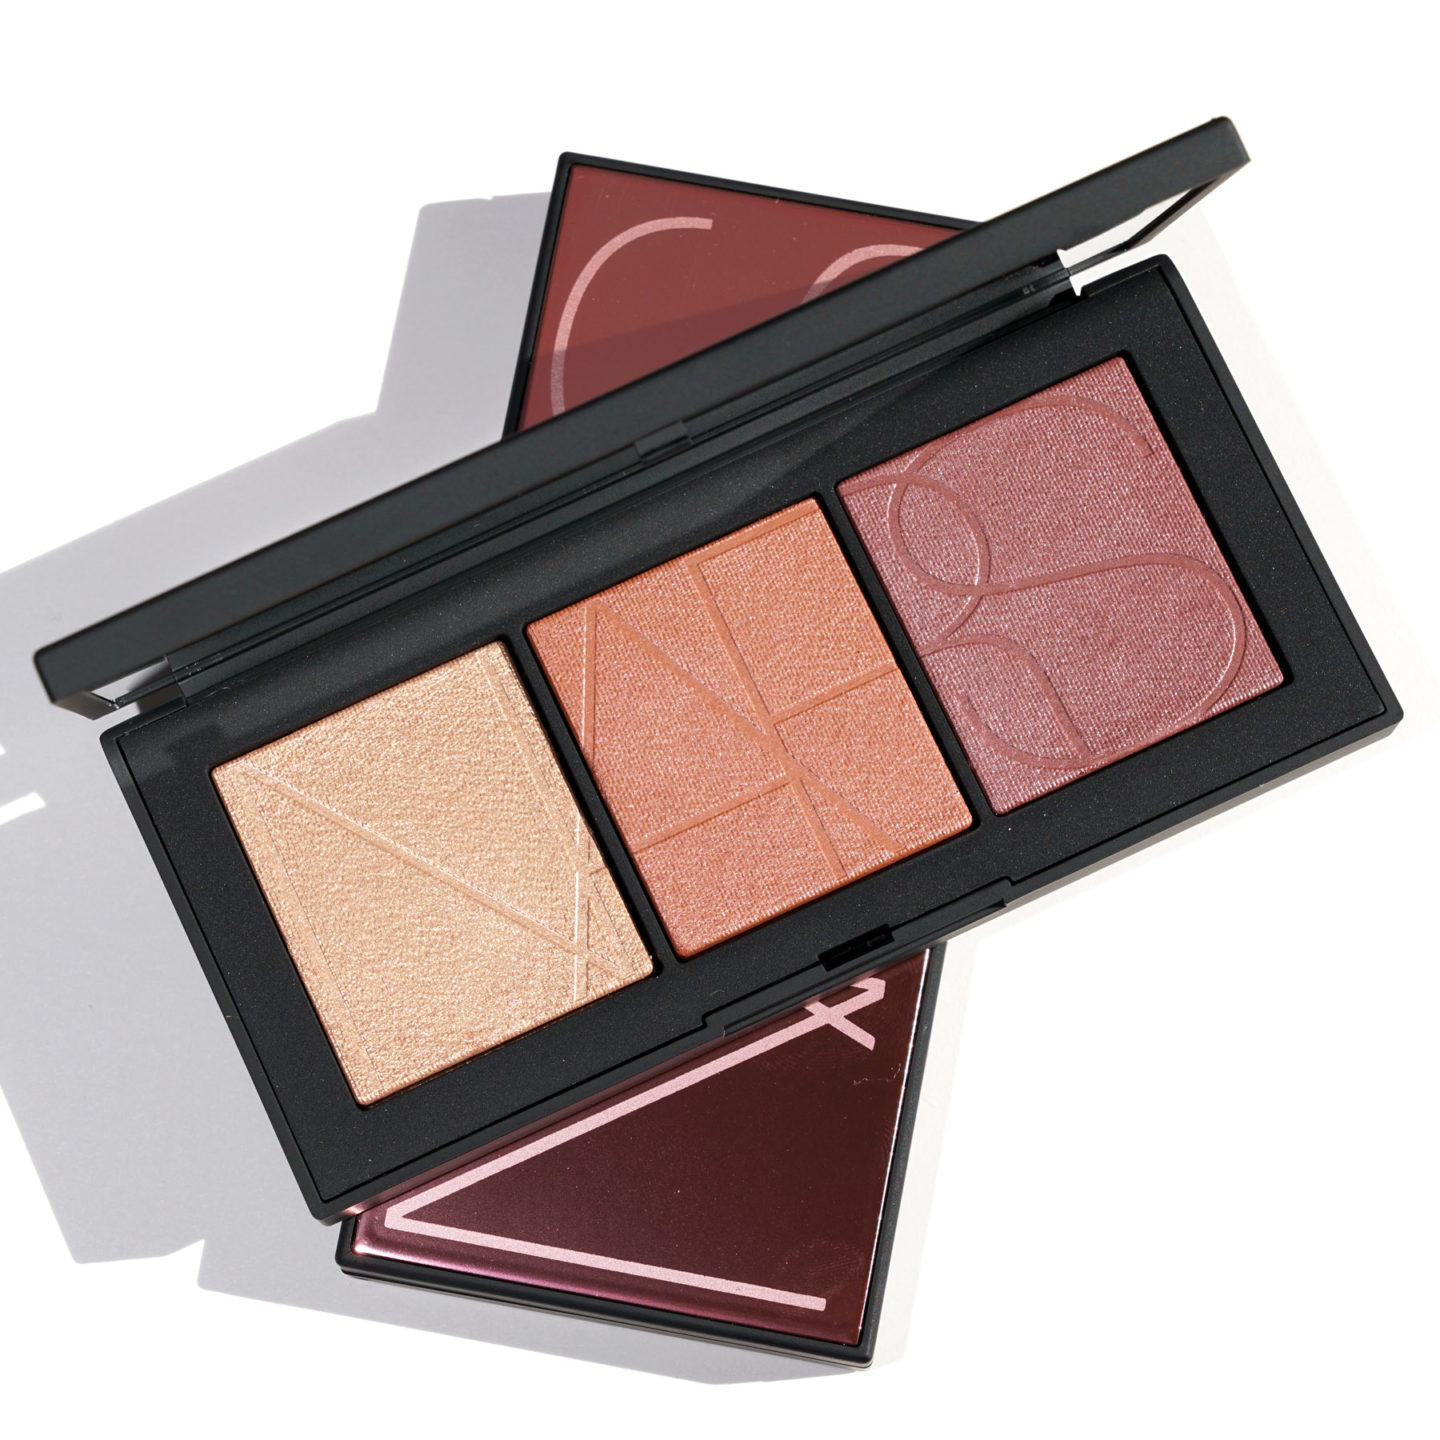 NARS Coucher de Soleil Easy Glowing Cheek Palette review and swatches